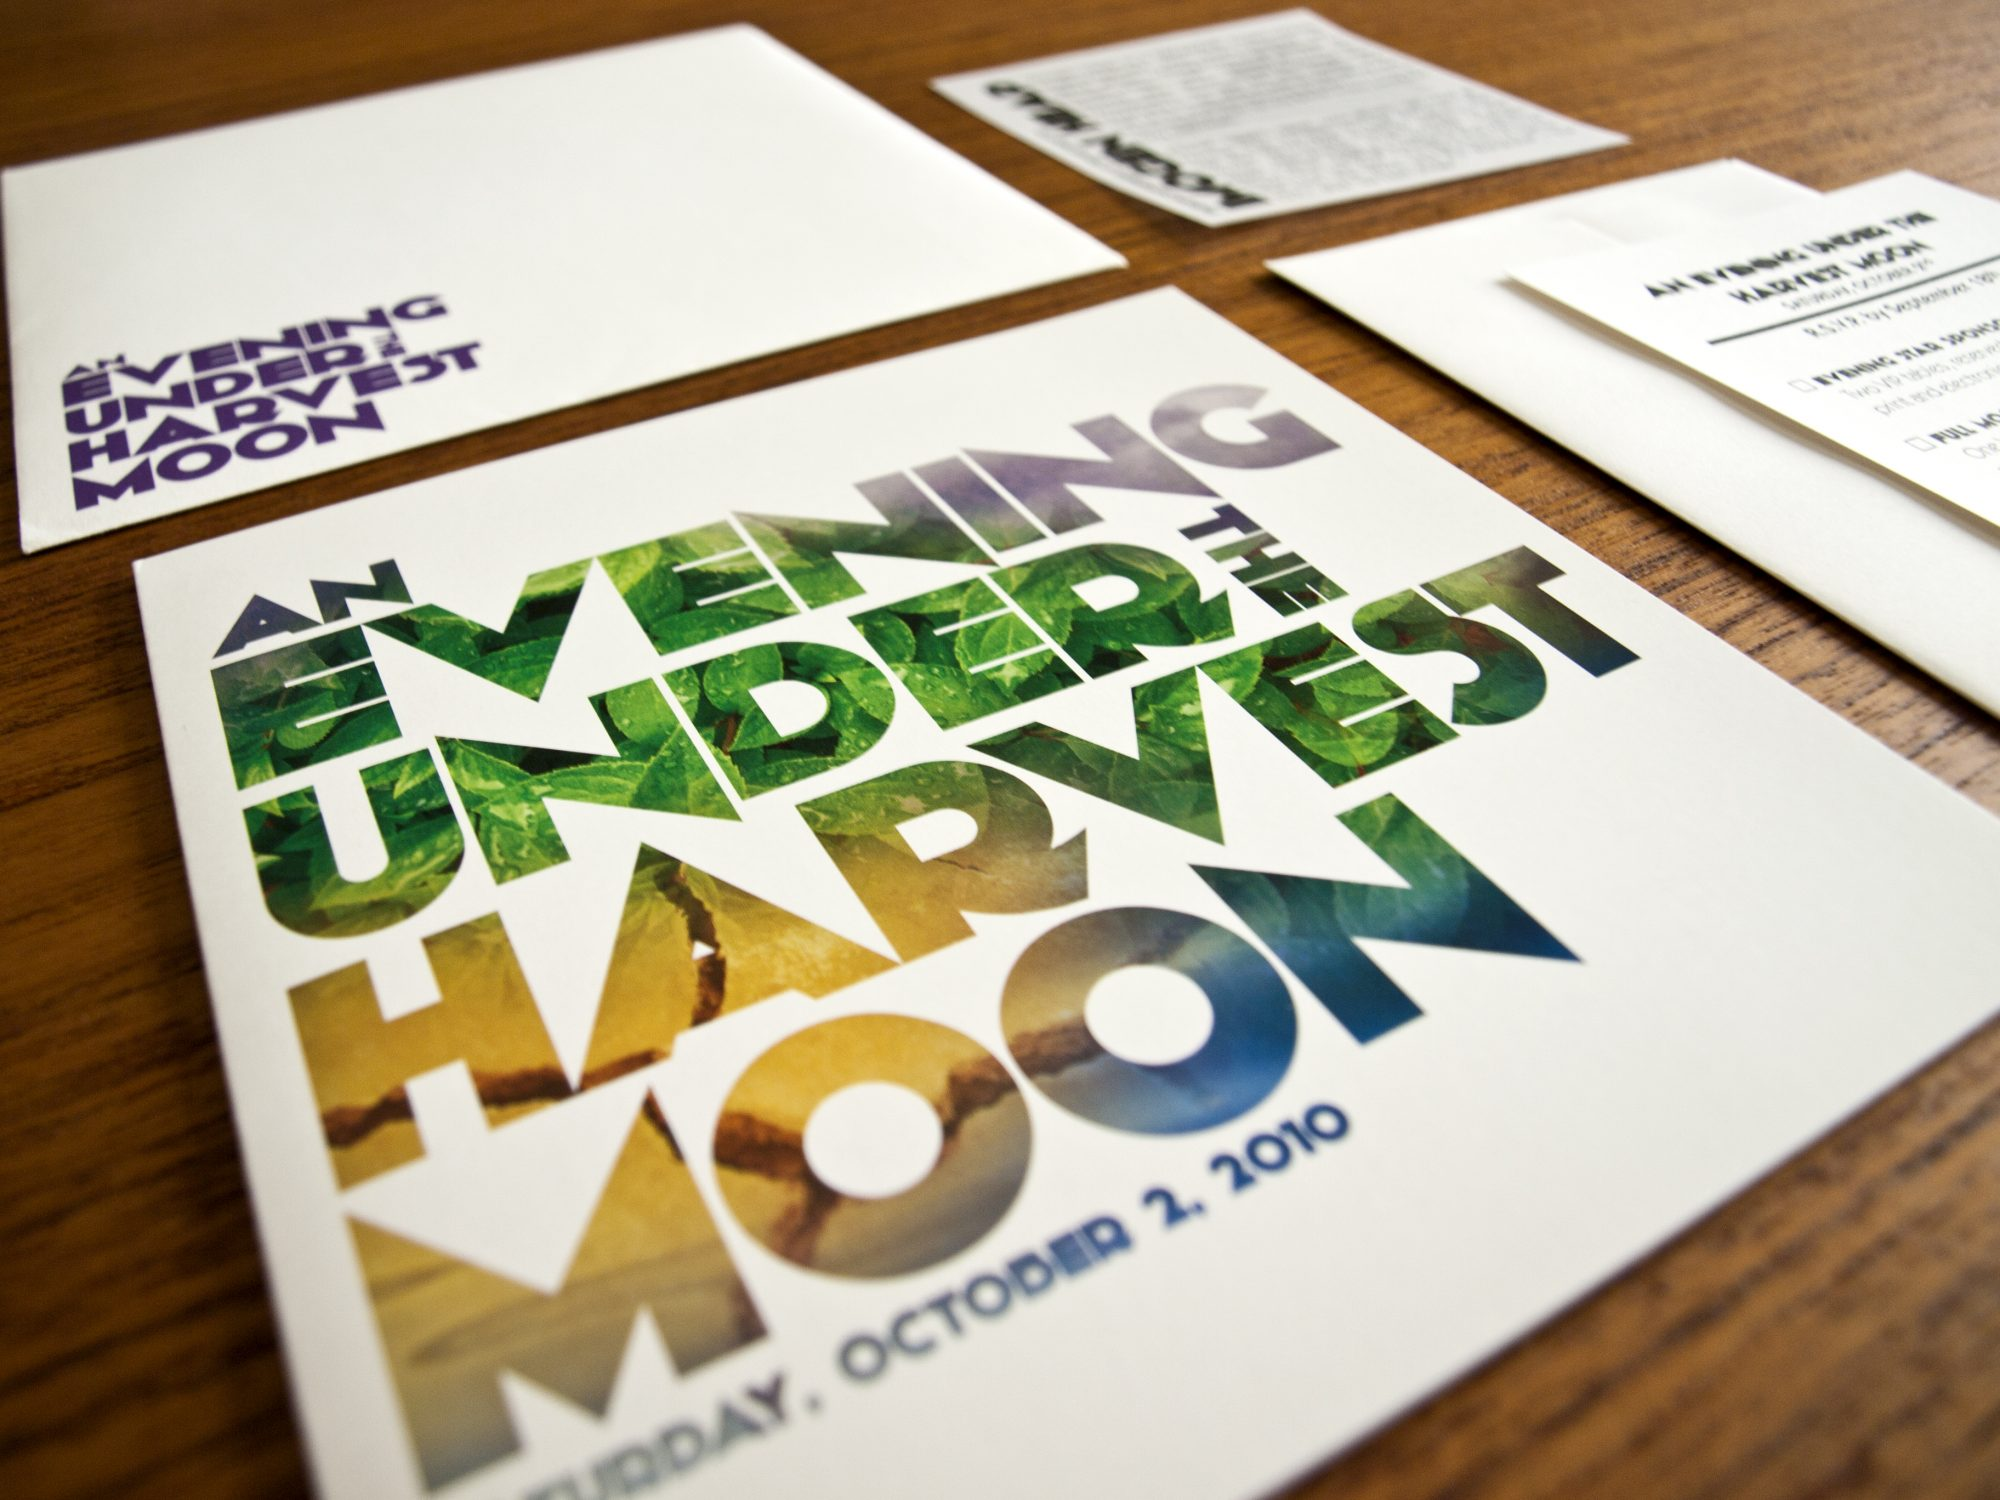 An Evening Under the Harvest Moon: Envelope, Invitation, RSVP Card, and Vellum Insert